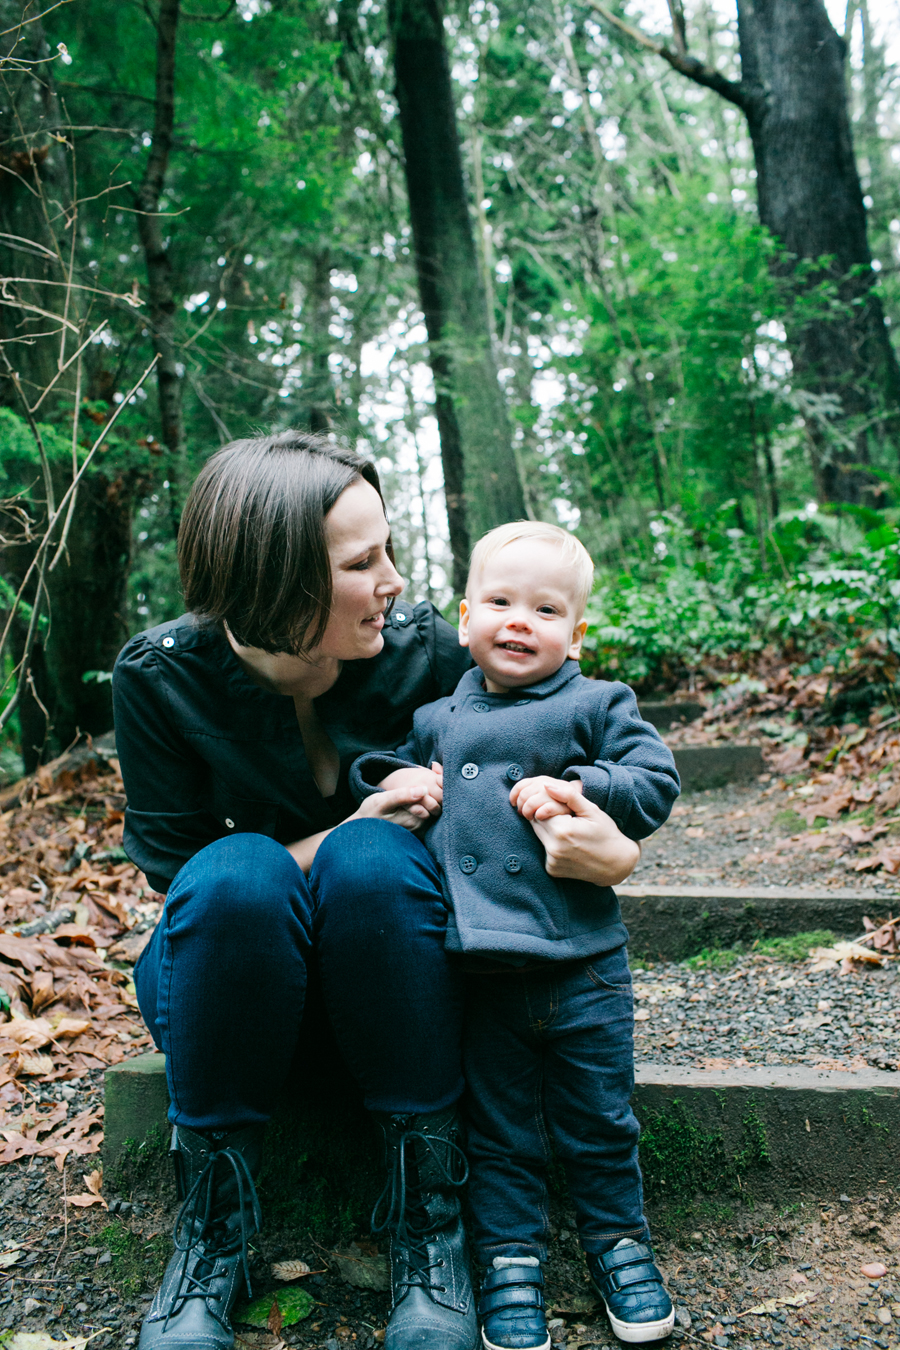 026-seattle-family-photographer-carkeek-park-katheryn-moran-photography.jpg